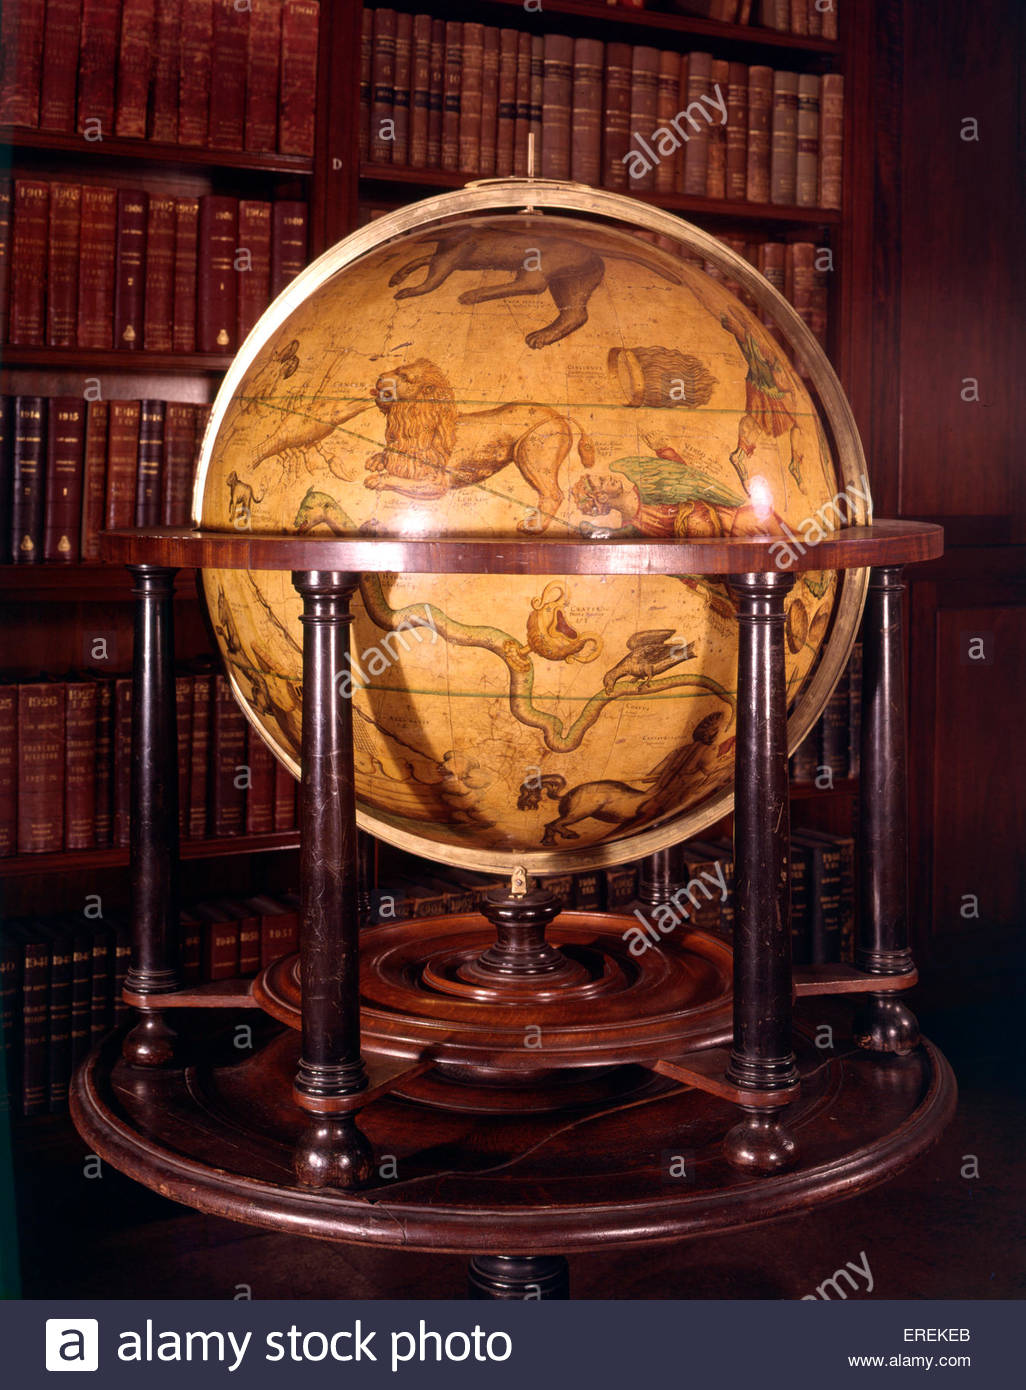 Celestial globe, made in the 16th or 17th century. With of depictions animals and other creatures representing signs - Stock Image